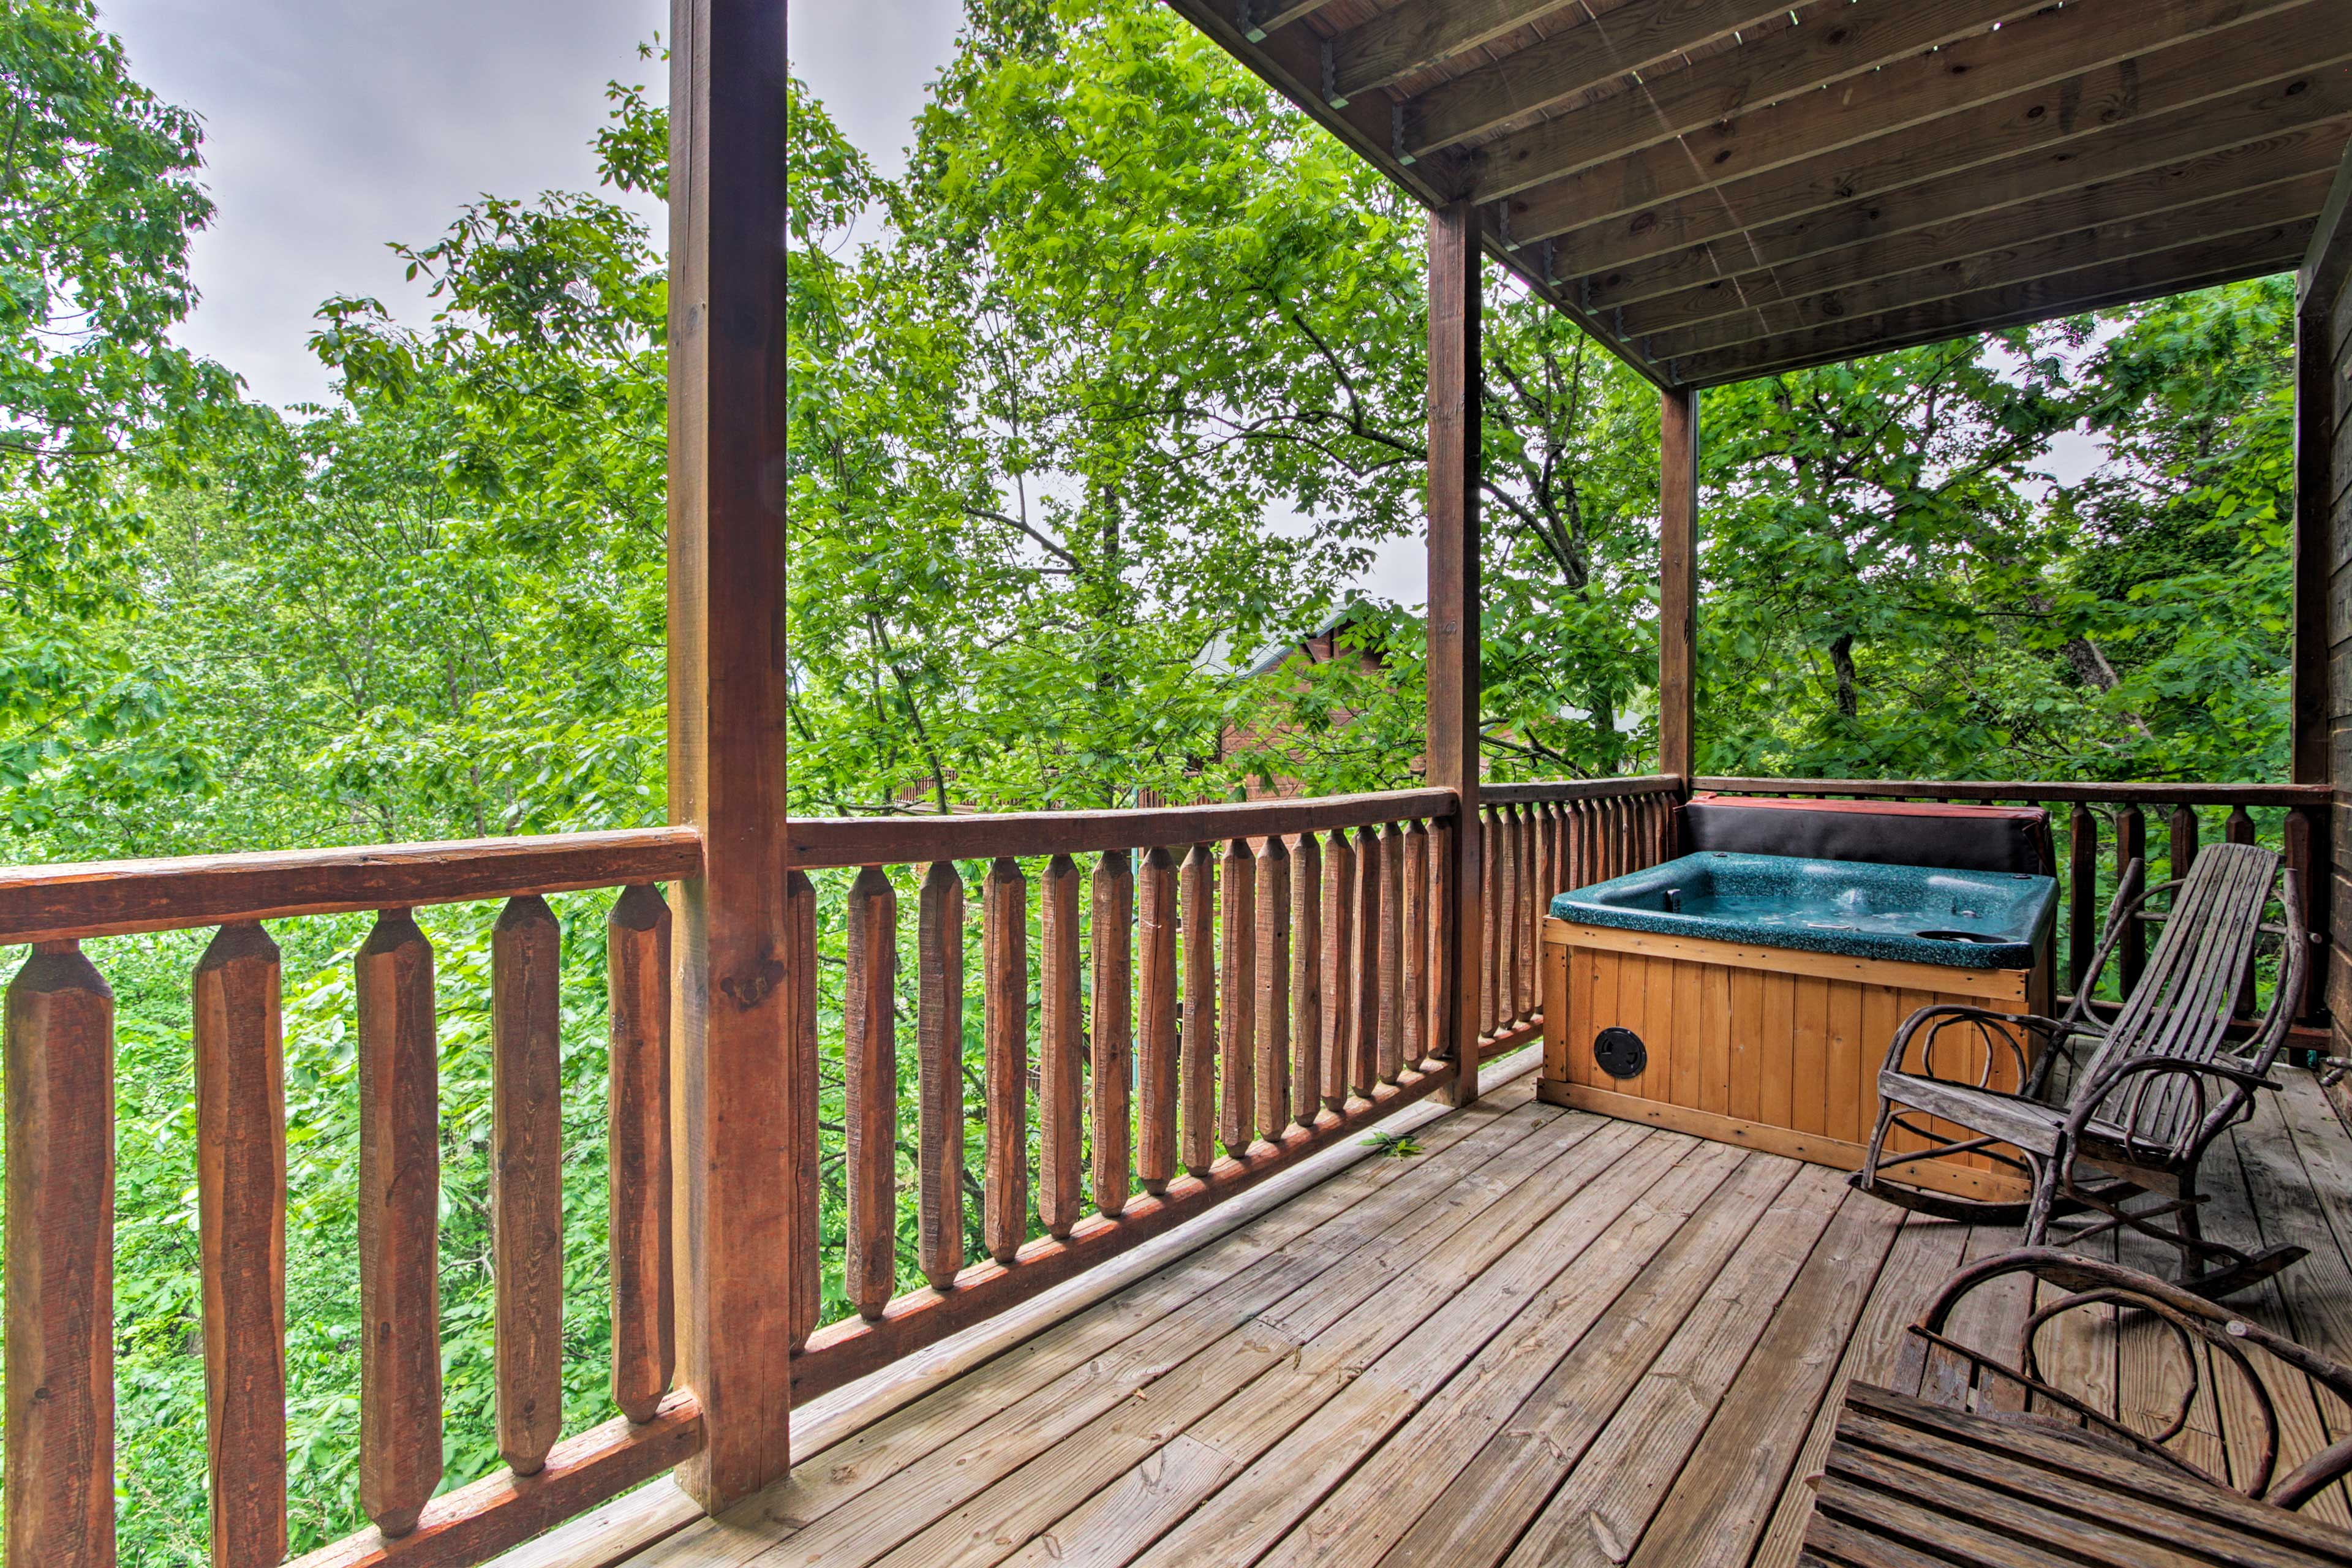 Ease sore hiking muscles in the private hot tub on the lower deck.